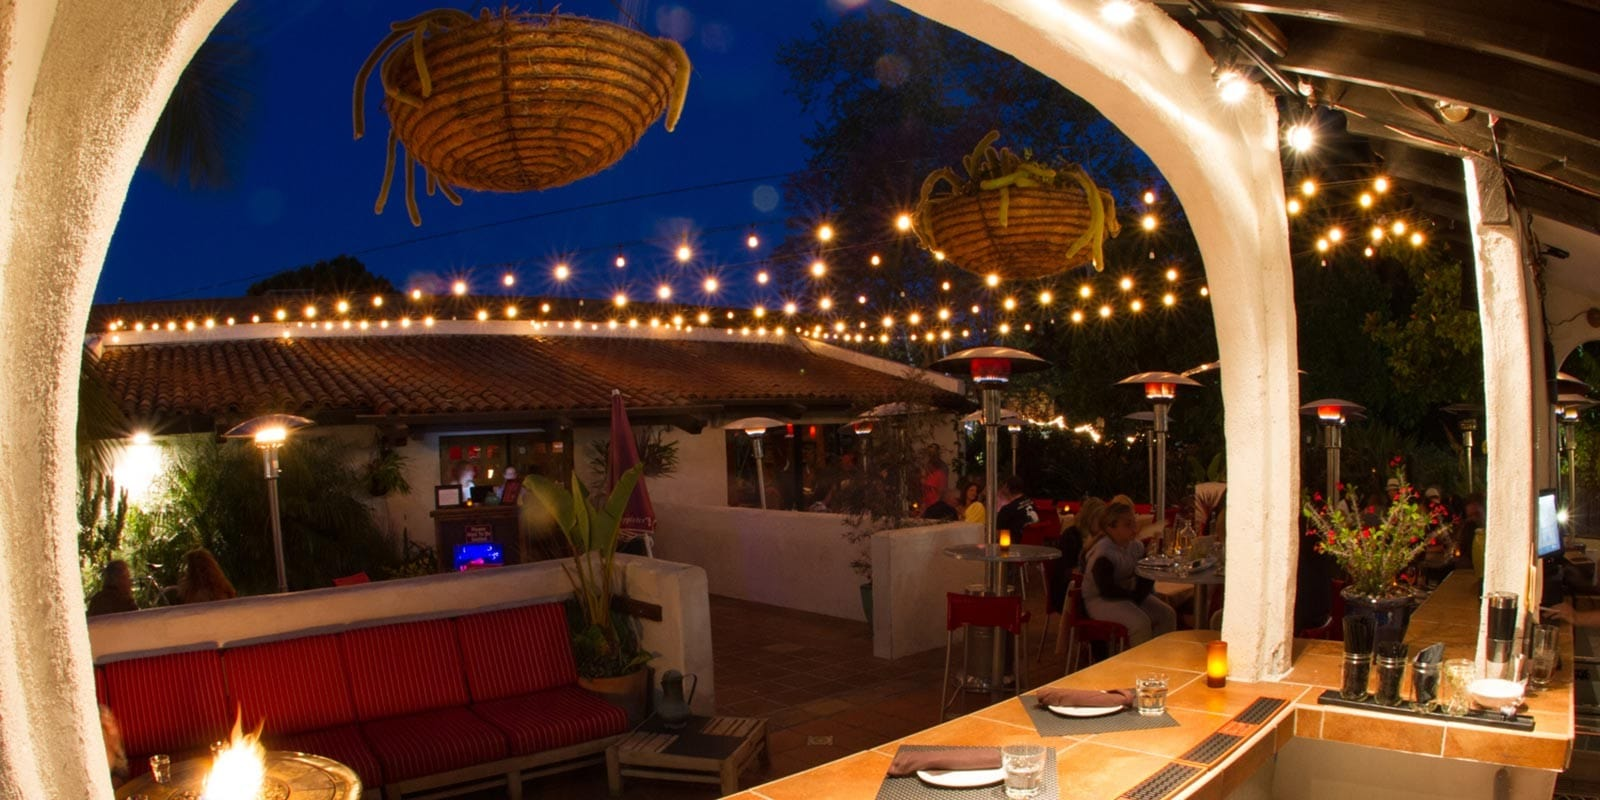 Luna Red, pictured, and sister restaurant, Novo, offer creative cuisine and outdoor seating for your rehearsal dinner